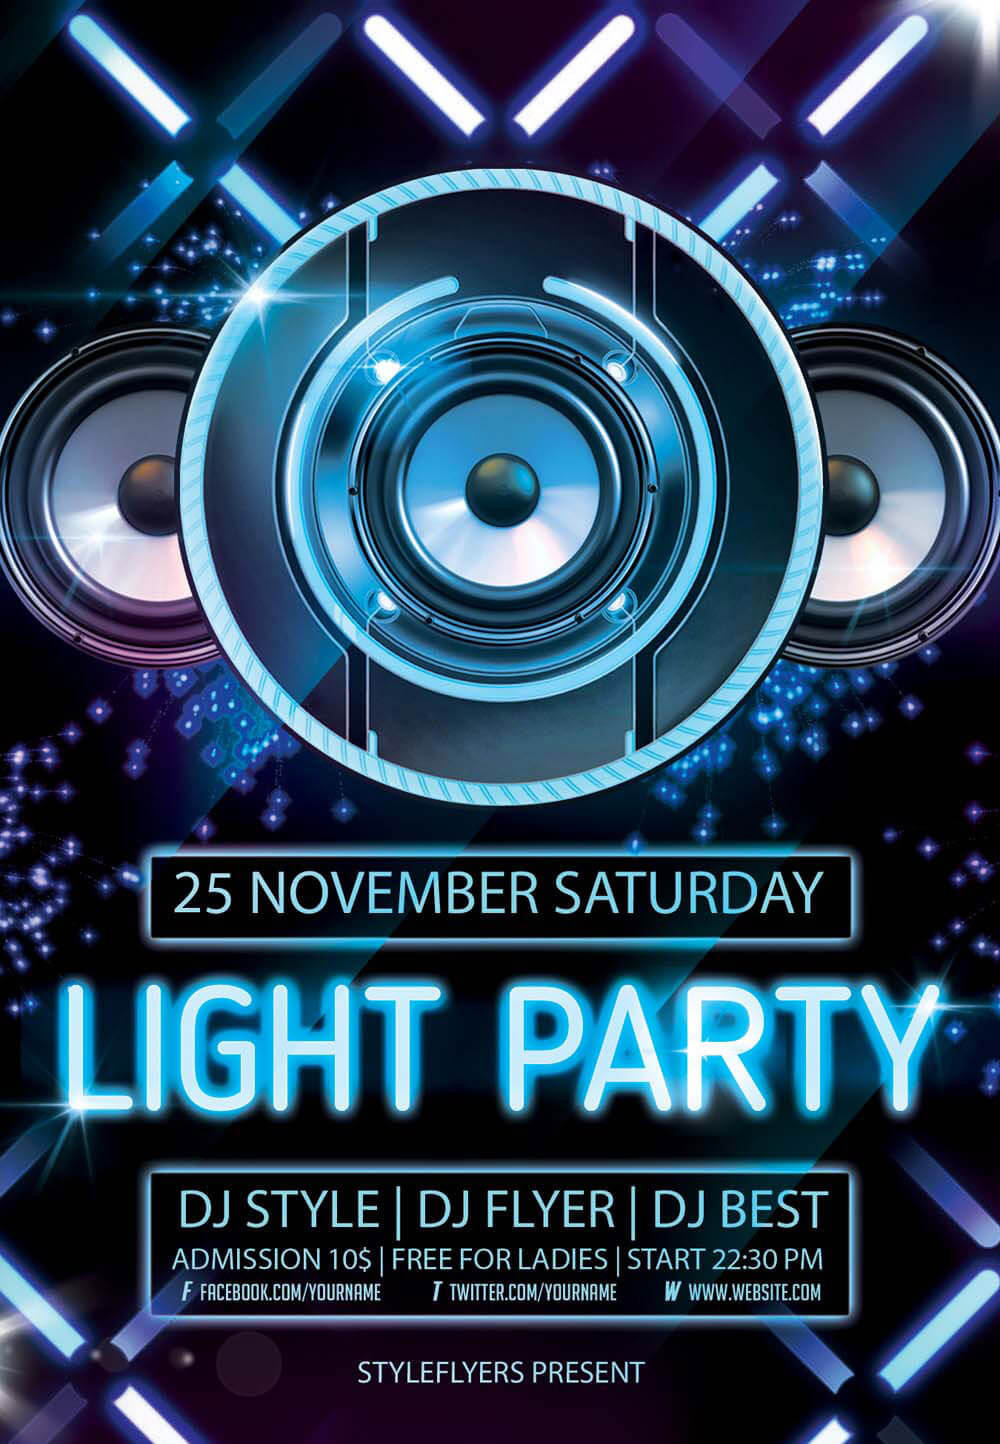 download flyer light party psd flyer template - Free Psd Flyer Templates